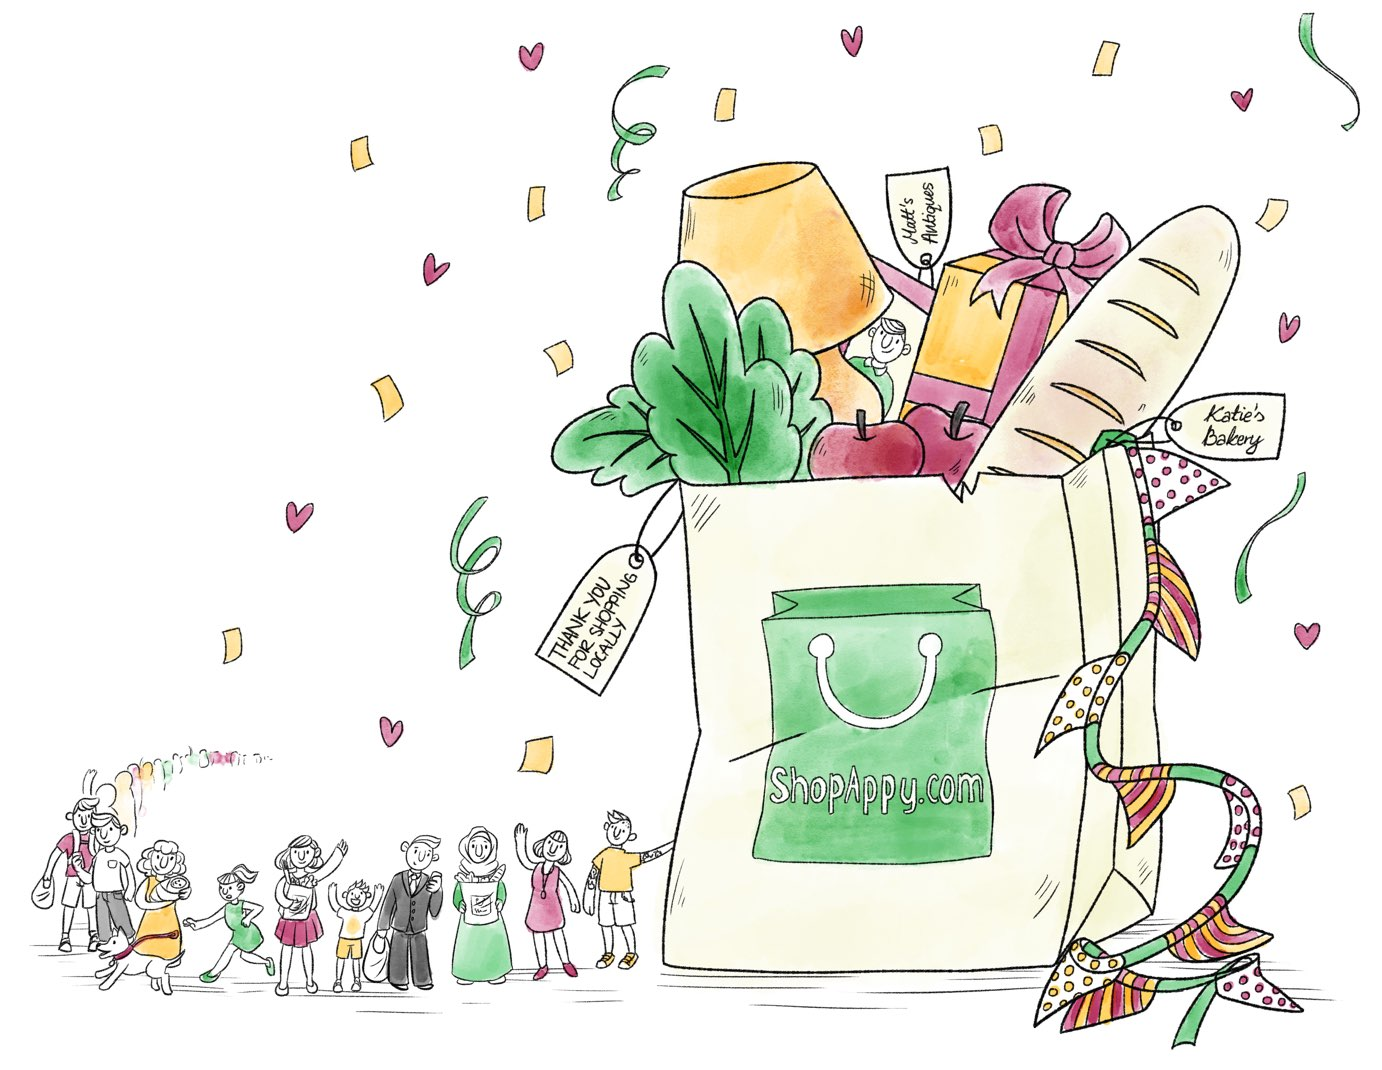 Shopappy illustration